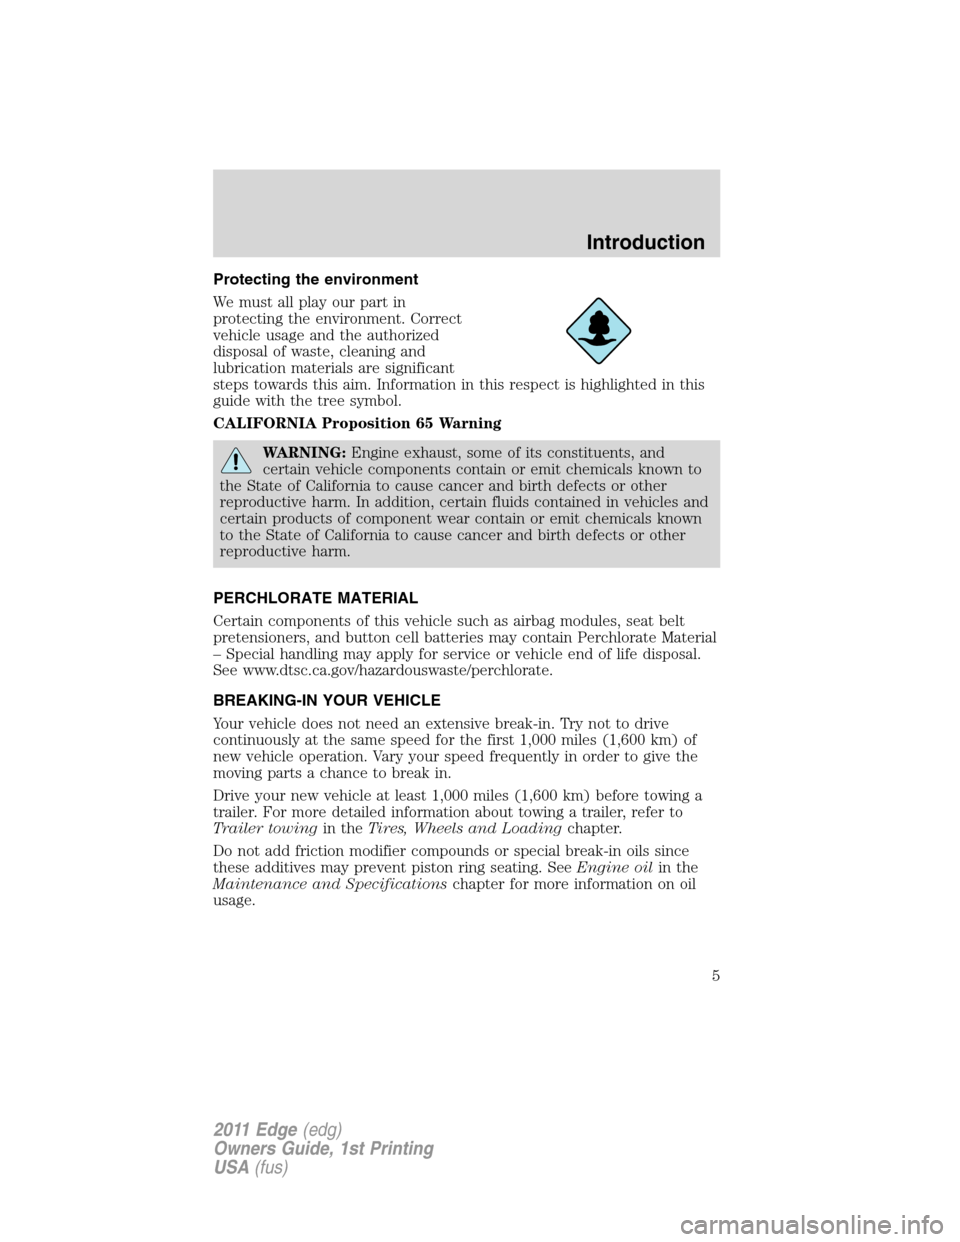 FORD EDGE 2011 1.G Owners Manual, Page 5